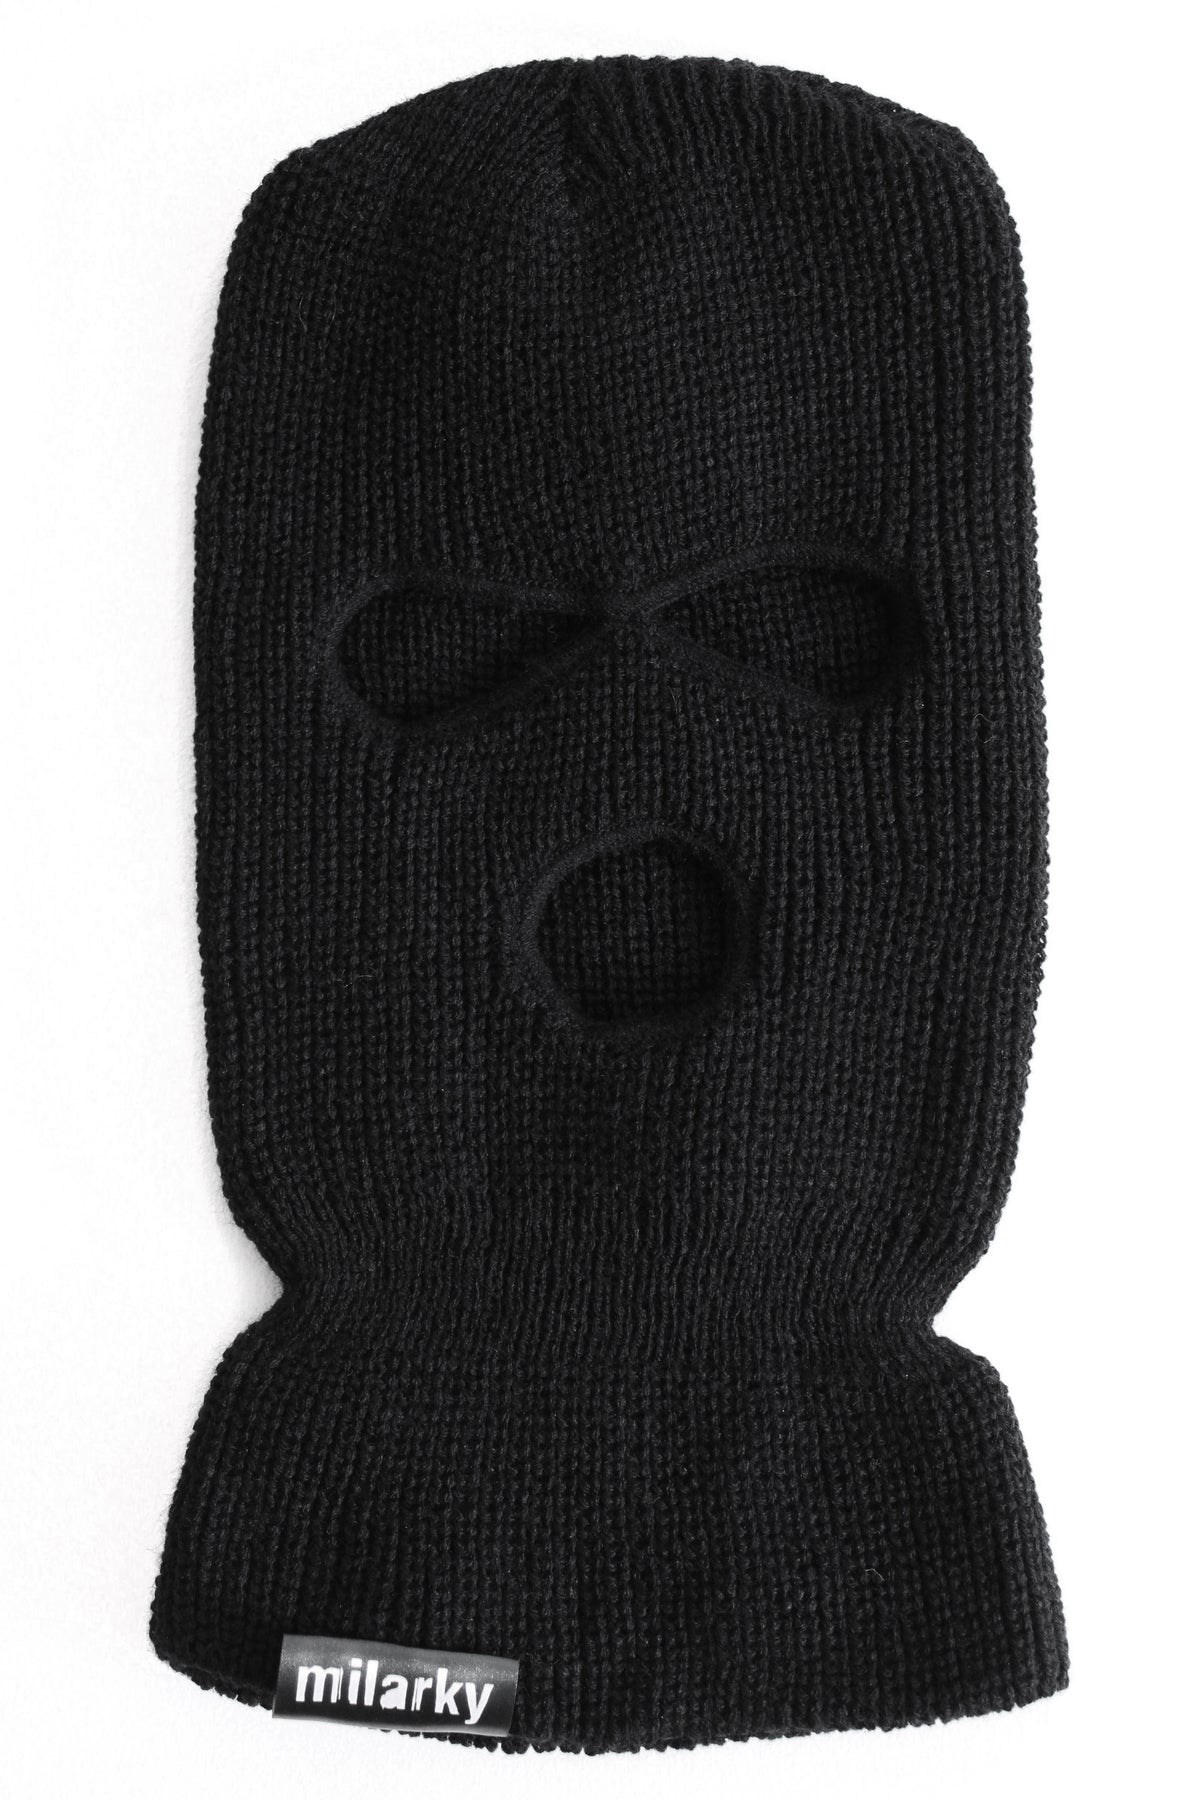 Image of ..BALACLAVA -2017